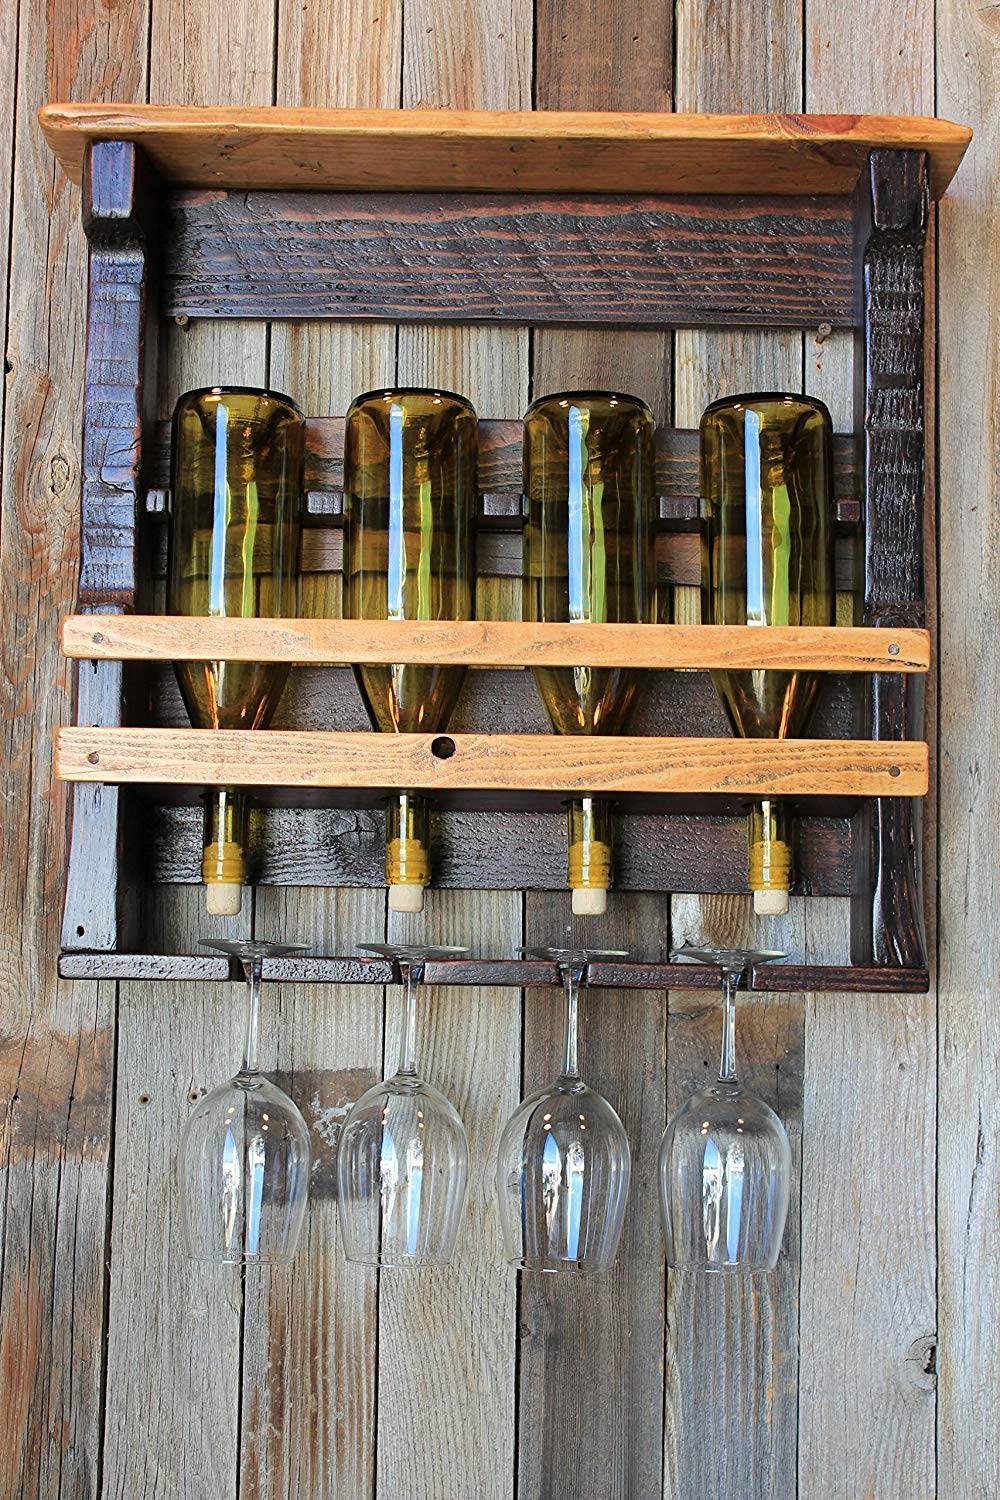 Rundown Rustics Wine Rack Storage Shelf Organizer Display Décor Organizer Cubby Rustic Reclaimed Recycled Upcycled Pallet Barn Wood Bar 4 Bottles Glasses Inverted Wall Mount